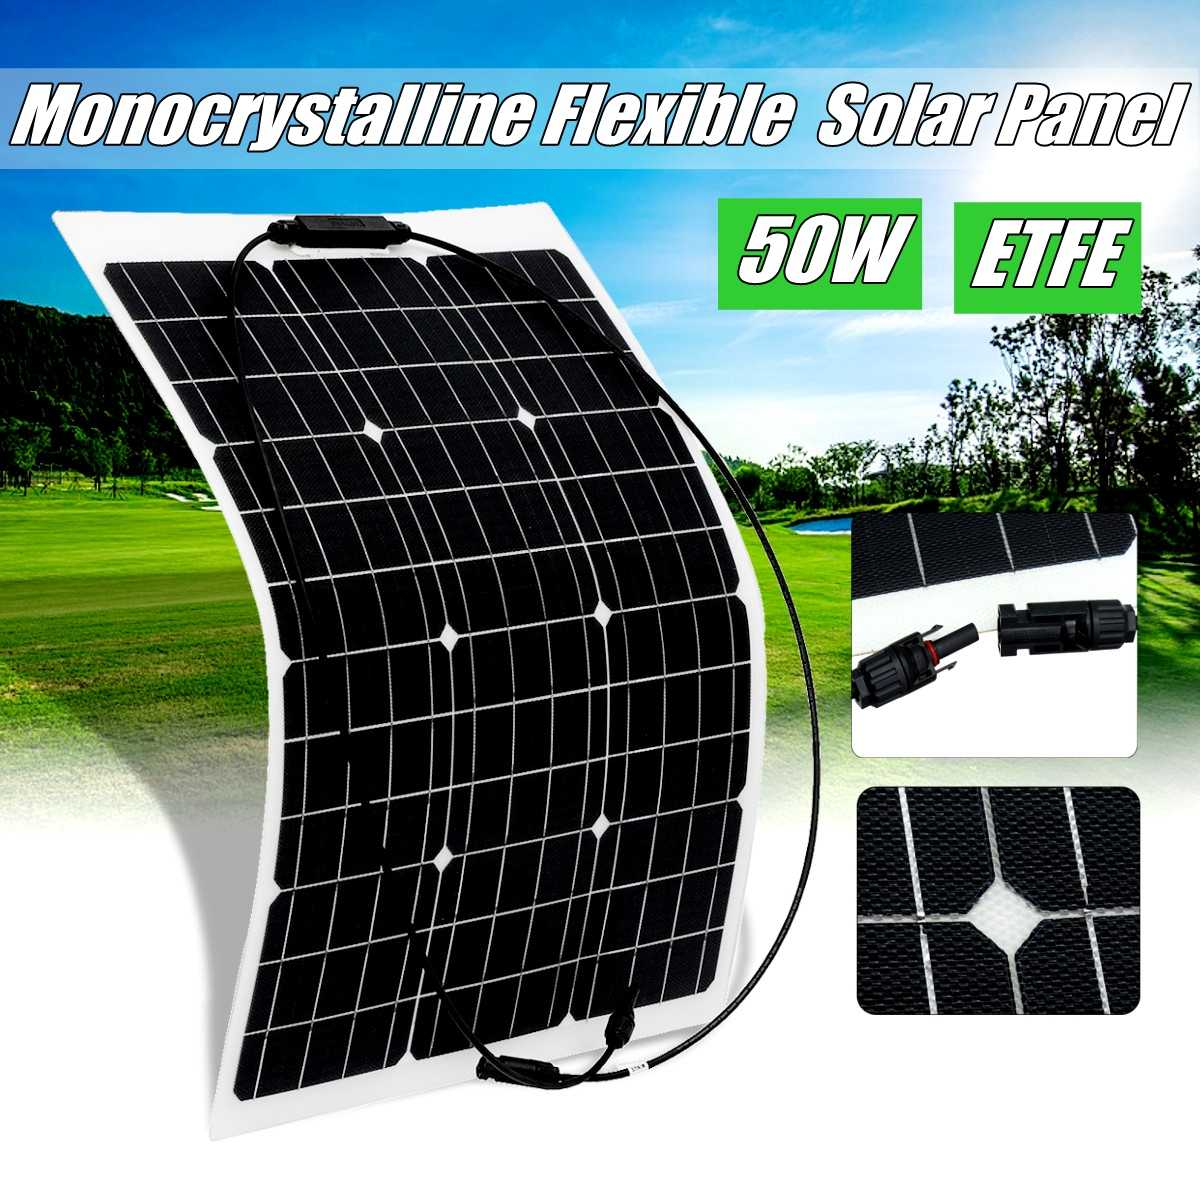 Flexible Solar Panel 18V 50W Solar Charger For 12V Car Battery ETFE Monocrystalline Cells For Hause,boat,roof with MC4 Cable image